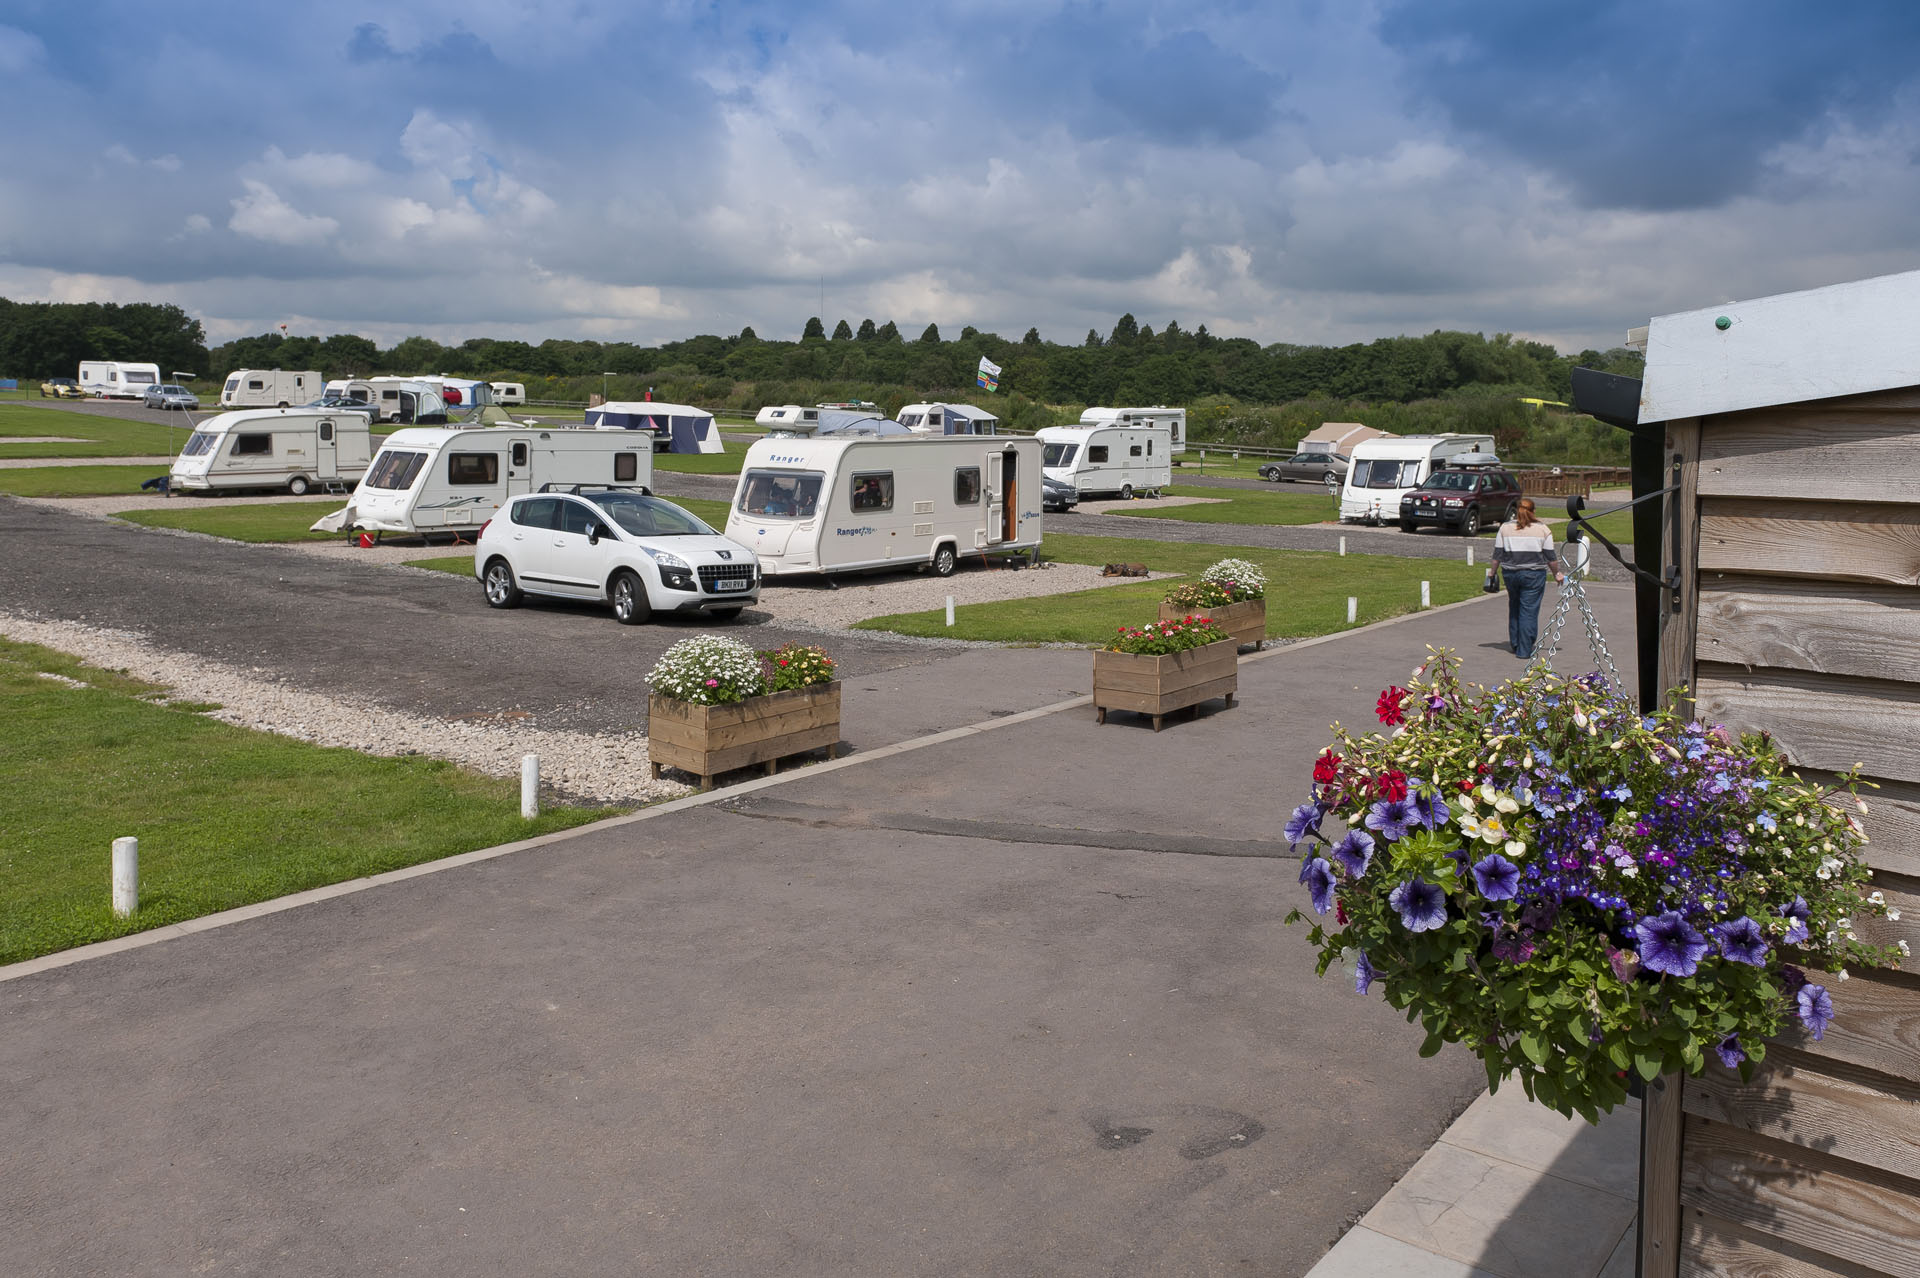 Scone - Camping and Caravanning Club Site - The Camping